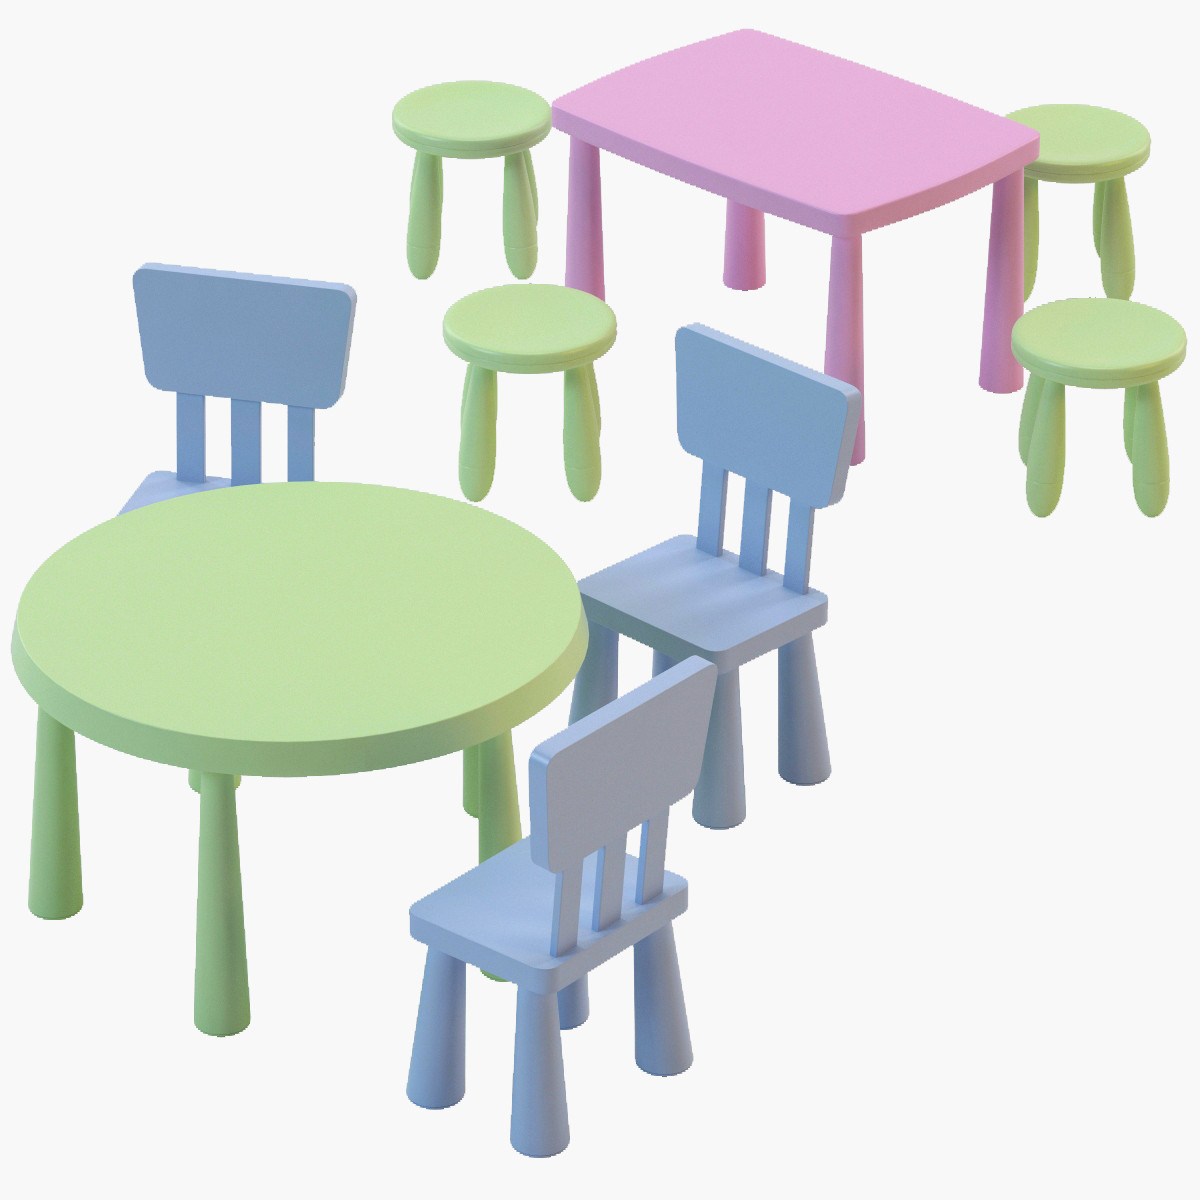 ikea childrens plastic table and chairs serta chair warranty contact sets drafting